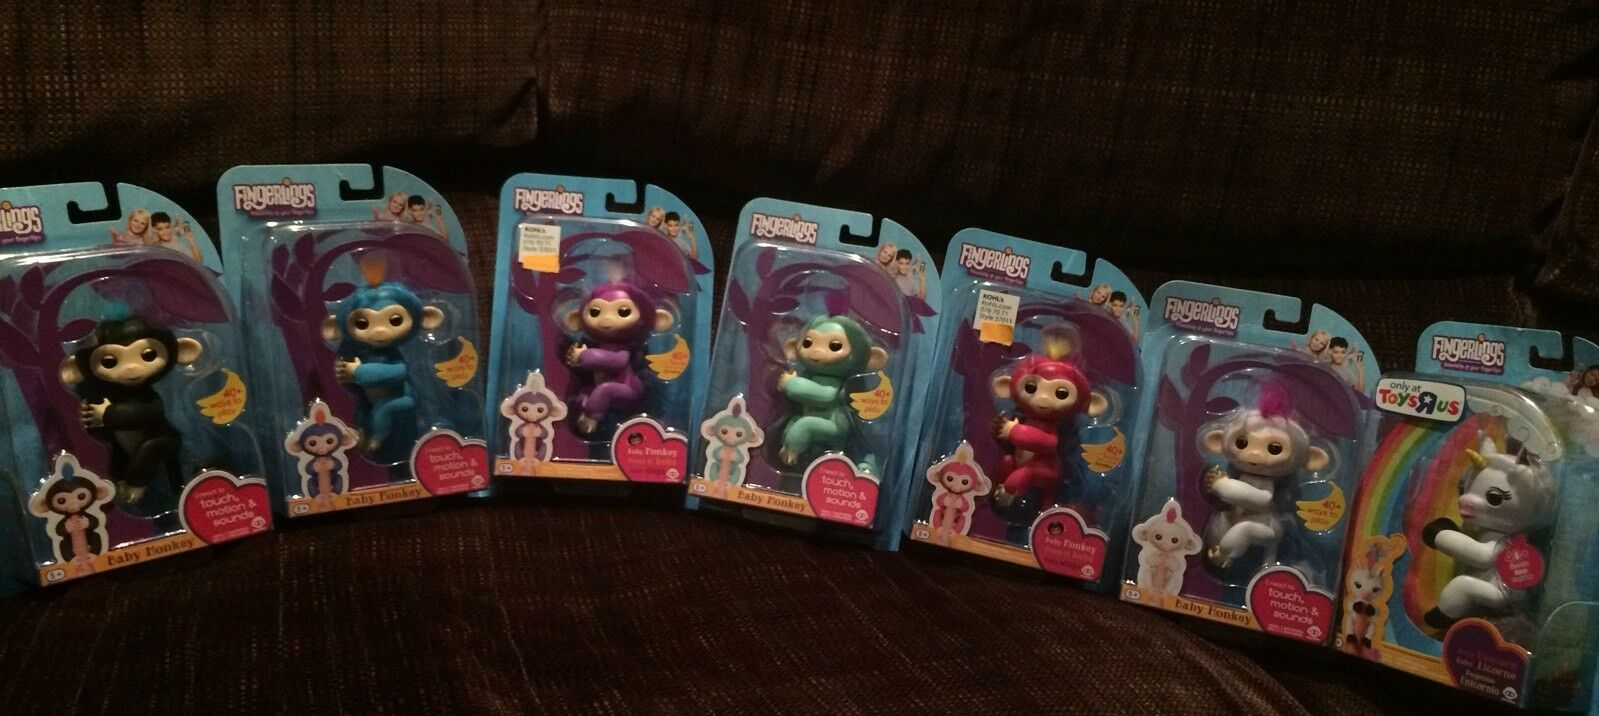 New WowWee WowWee WowWee AUTHENTIC Fingerlings Complete set 6 Baby Monkeys and GiGi Unicorn 0caf8e